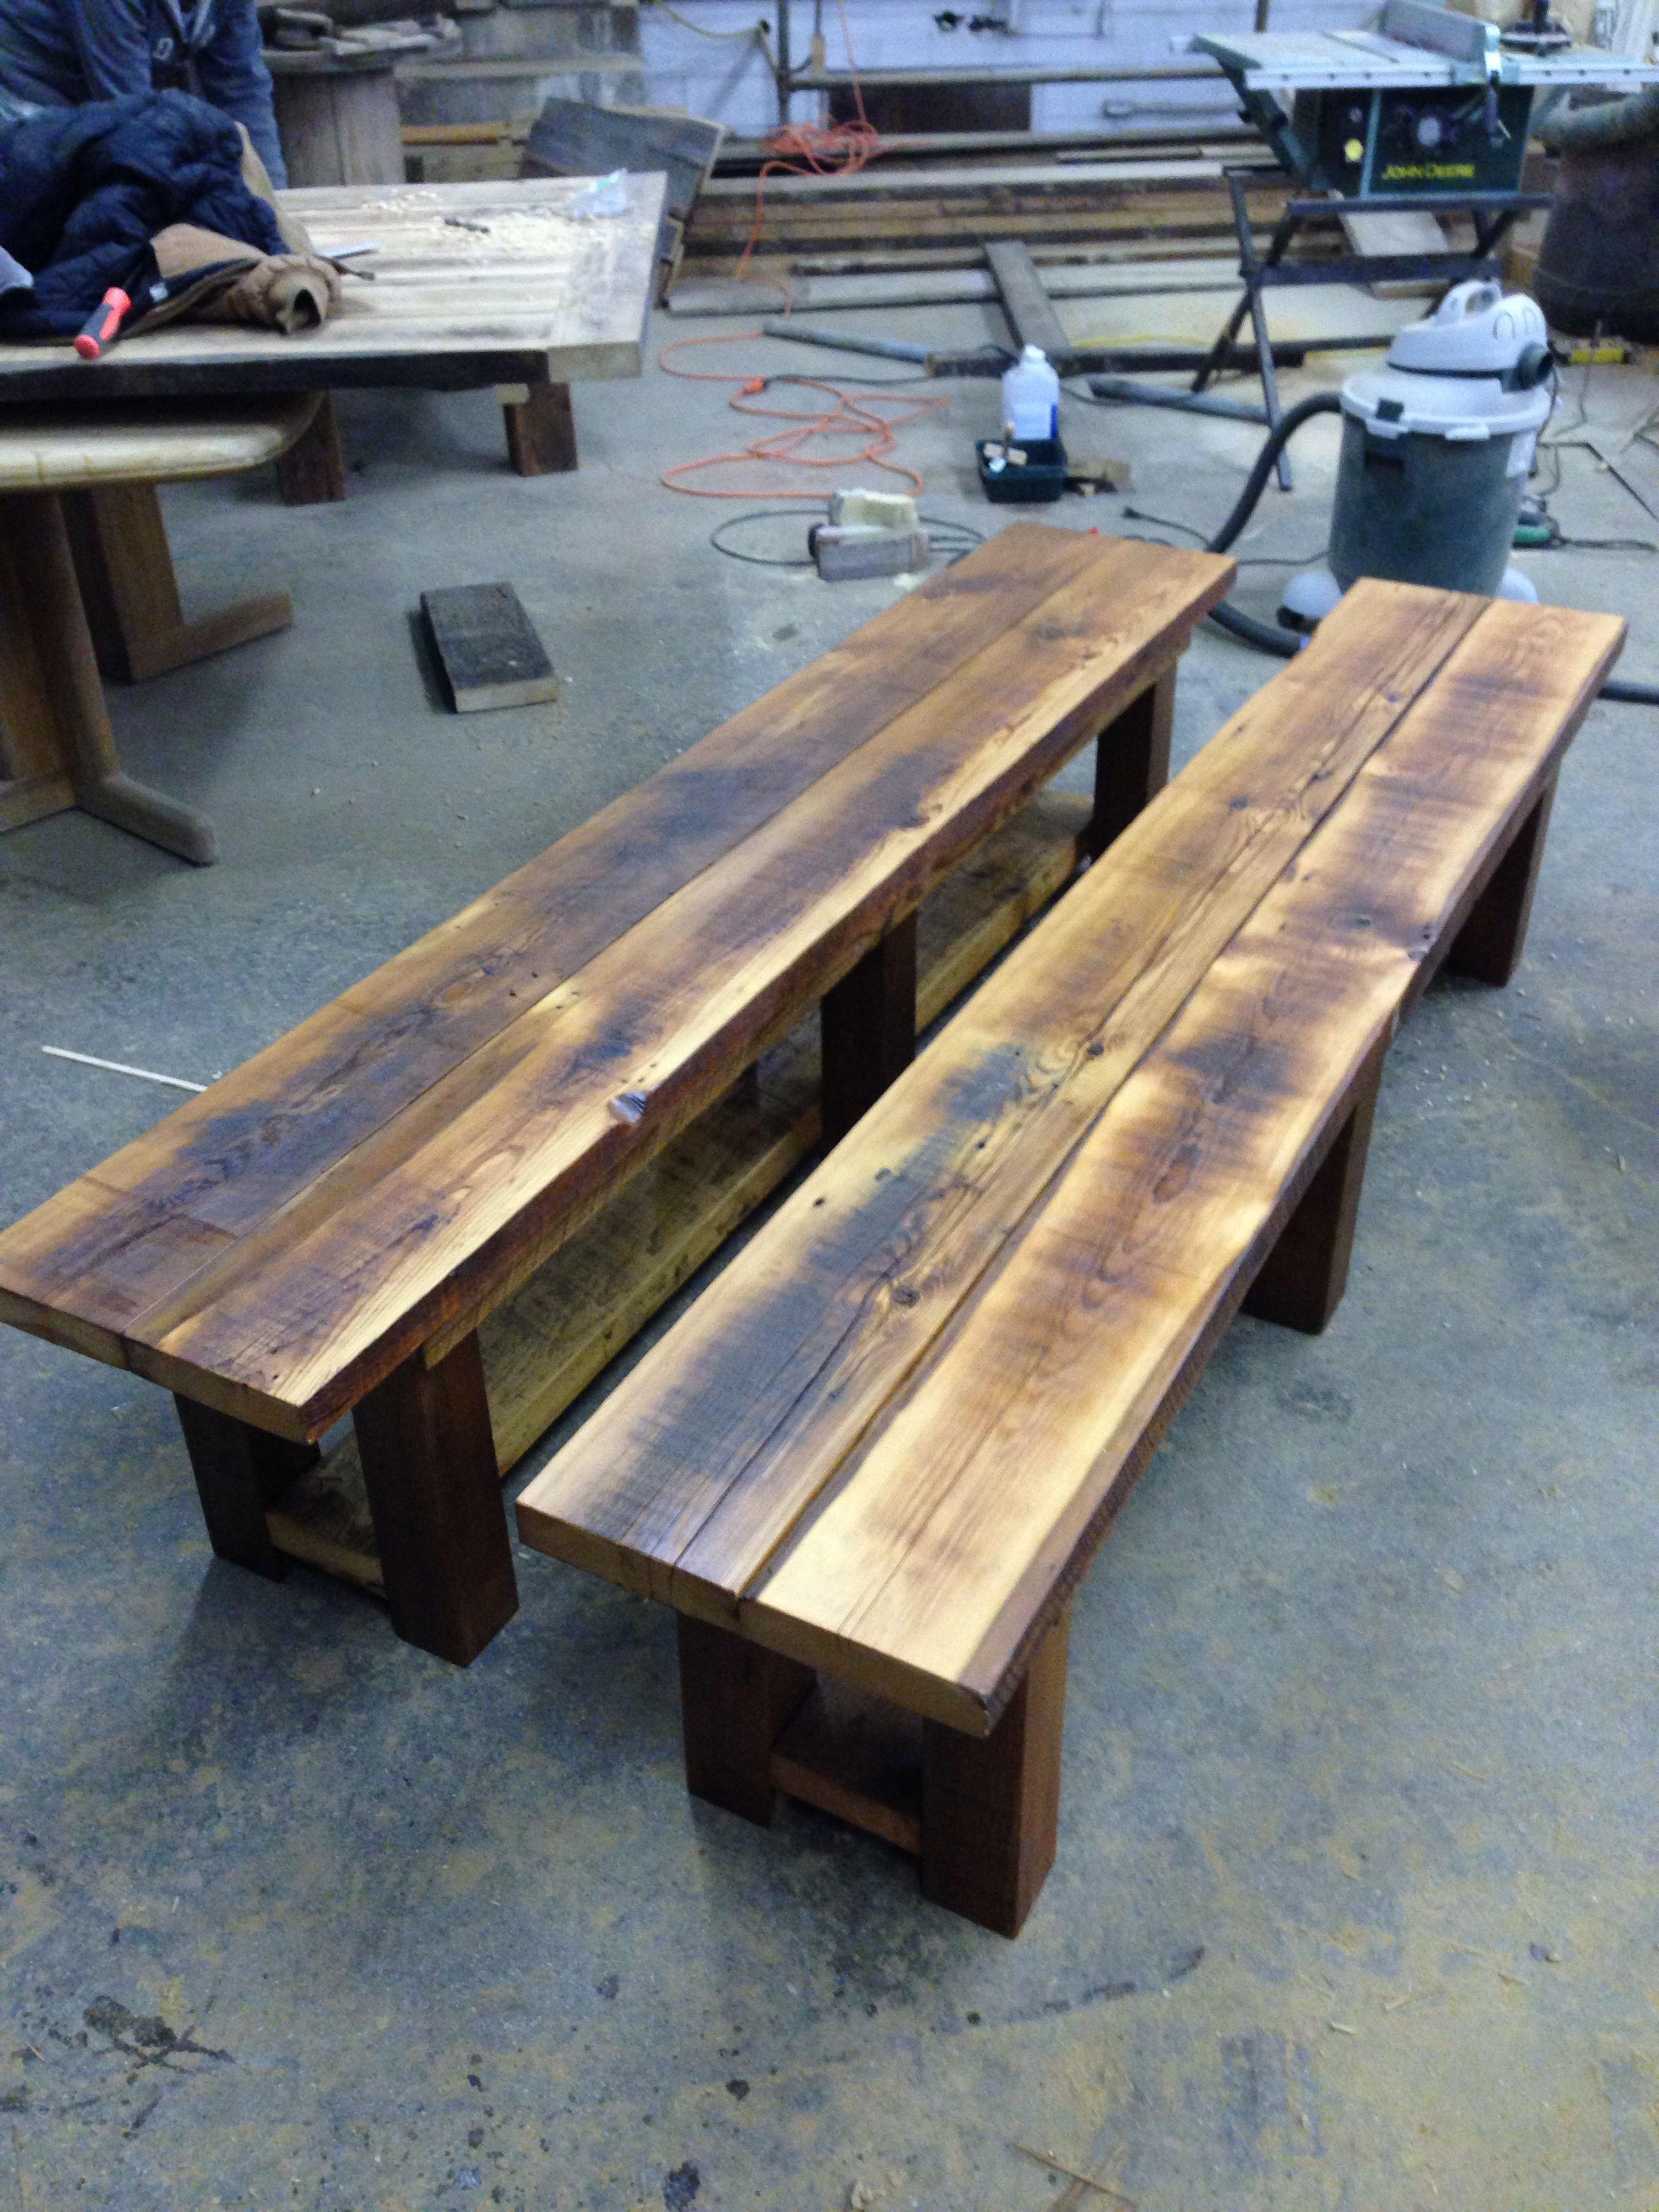 100 Plus Year Old Barn Wood Benches Old Barn Wood Barn Wood Barn Wood Projects